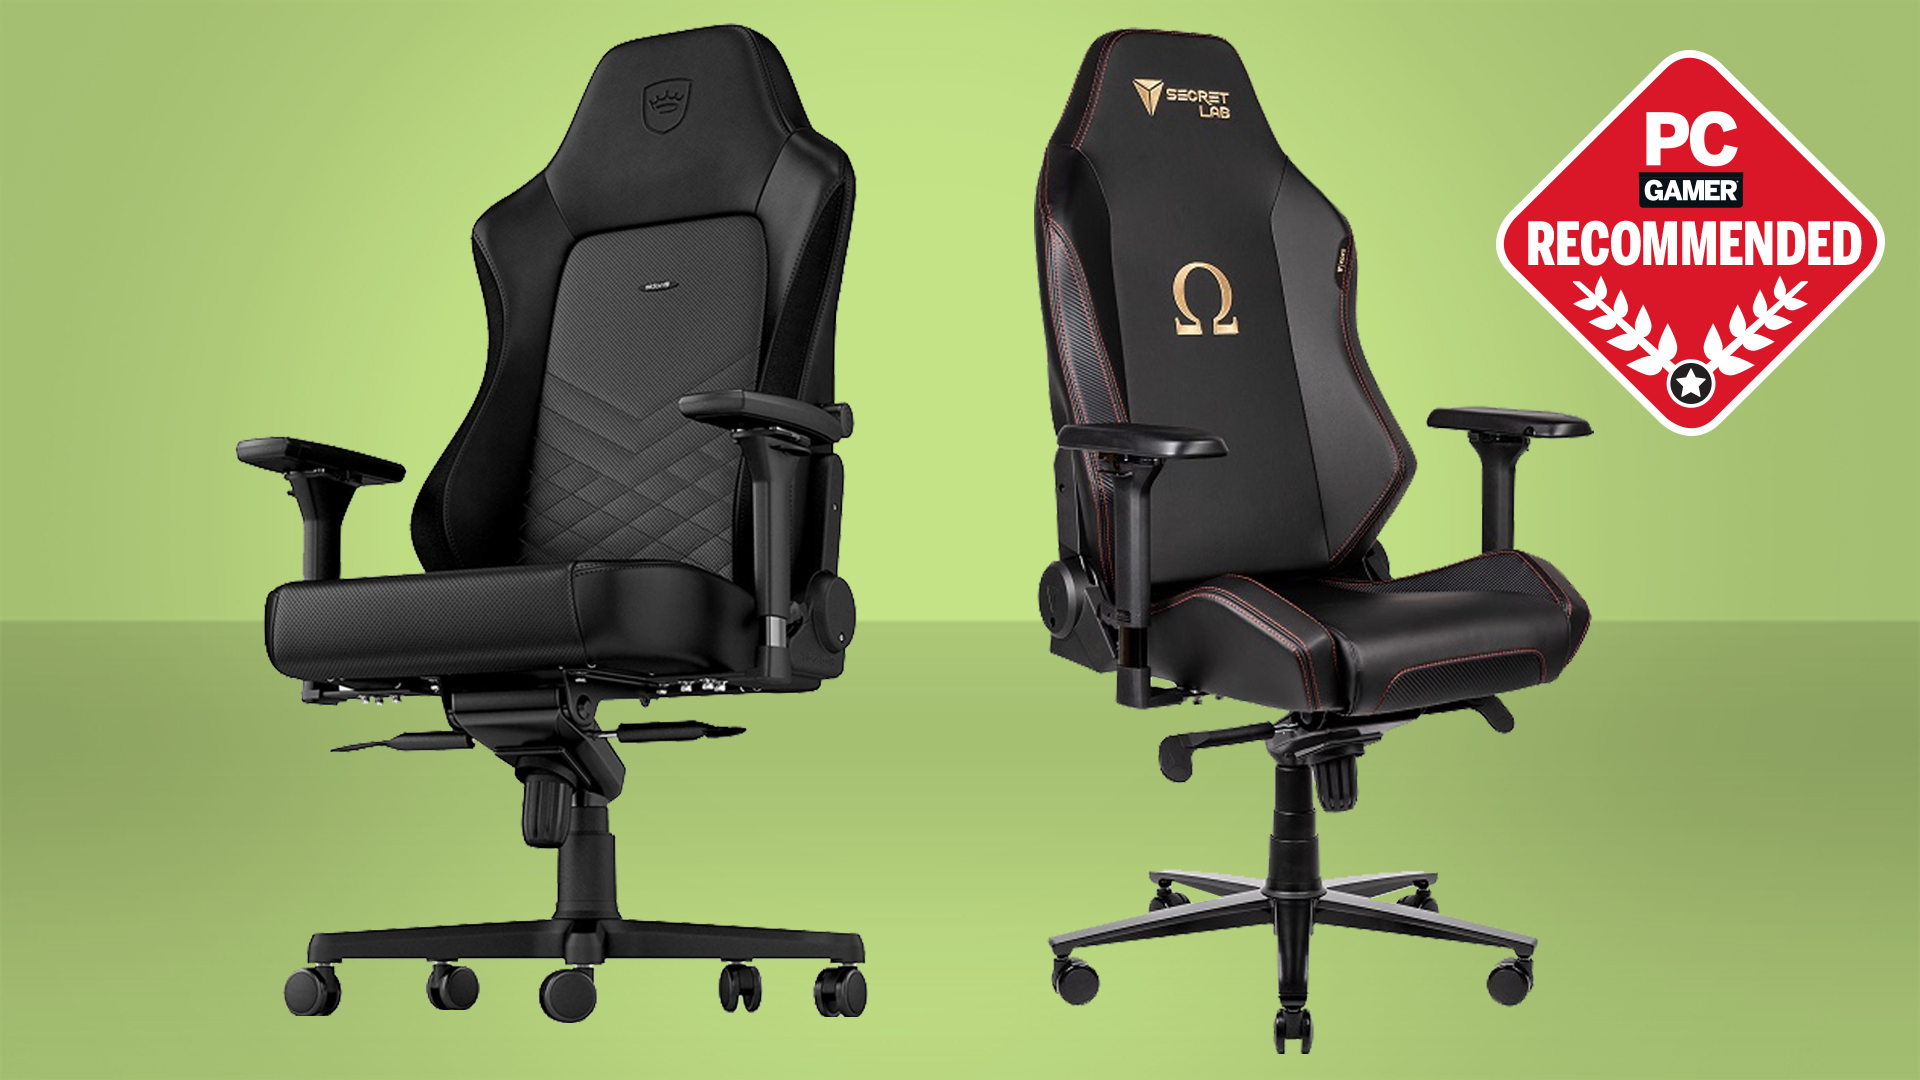 Awe Inspiring The Best Gaming Chairs 2019 Pc Gamer Pdpeps Interior Chair Design Pdpepsorg